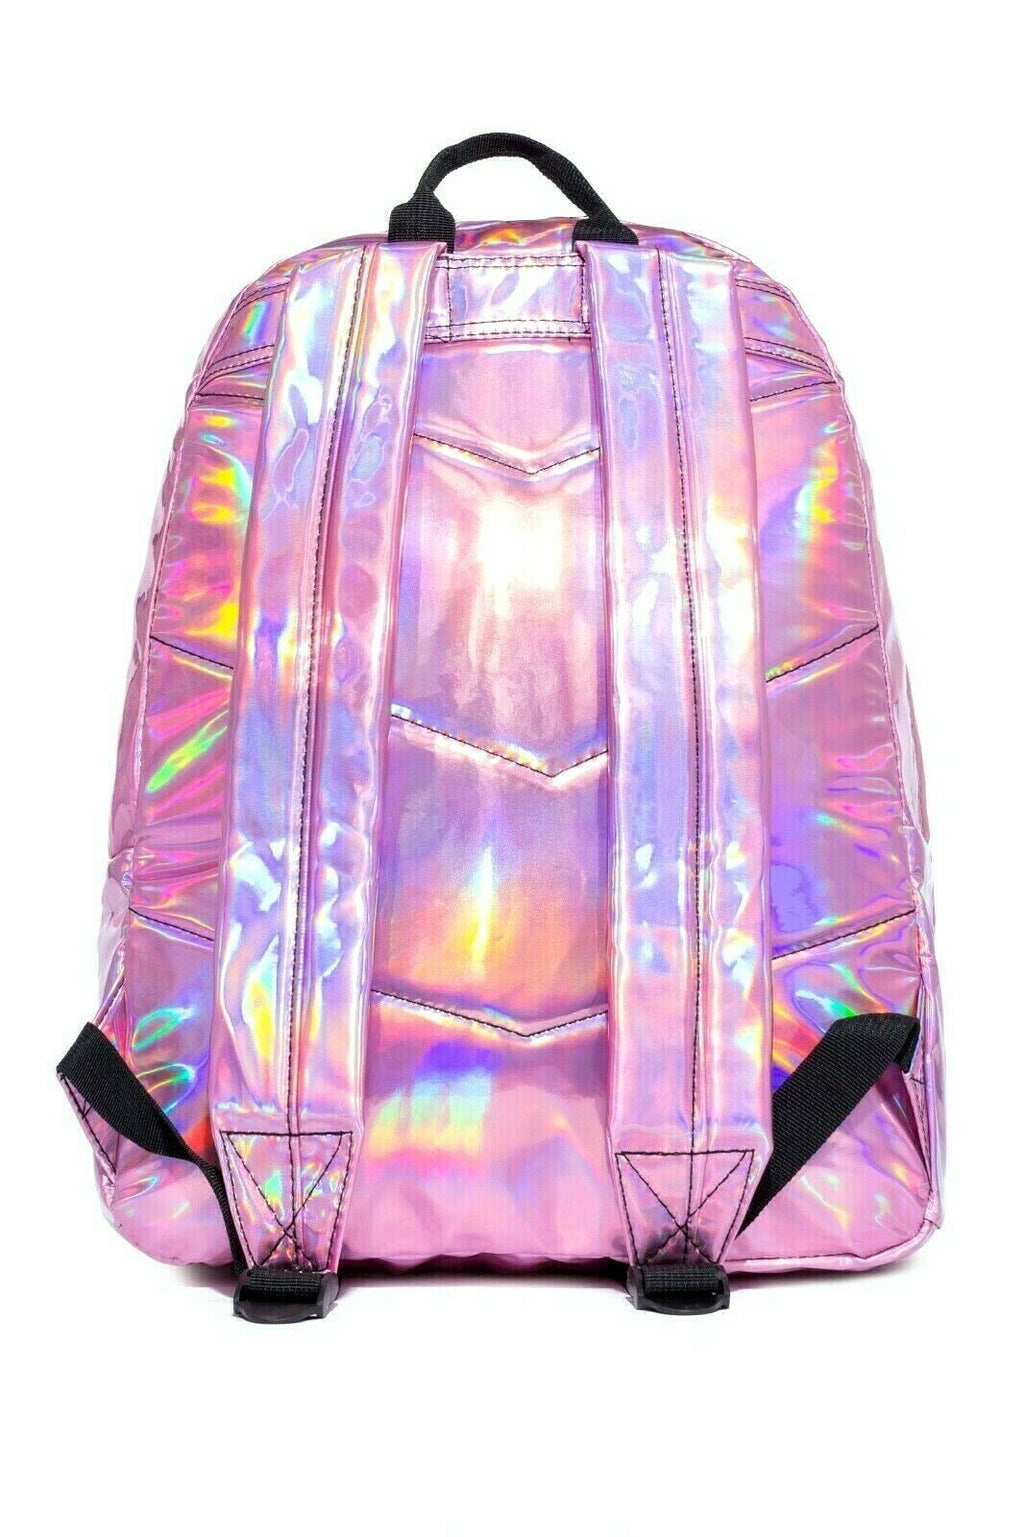 HYPE HOLOGRAPHIC MIX BACKPACK RUCKSACK BAG - PINK/SILVER